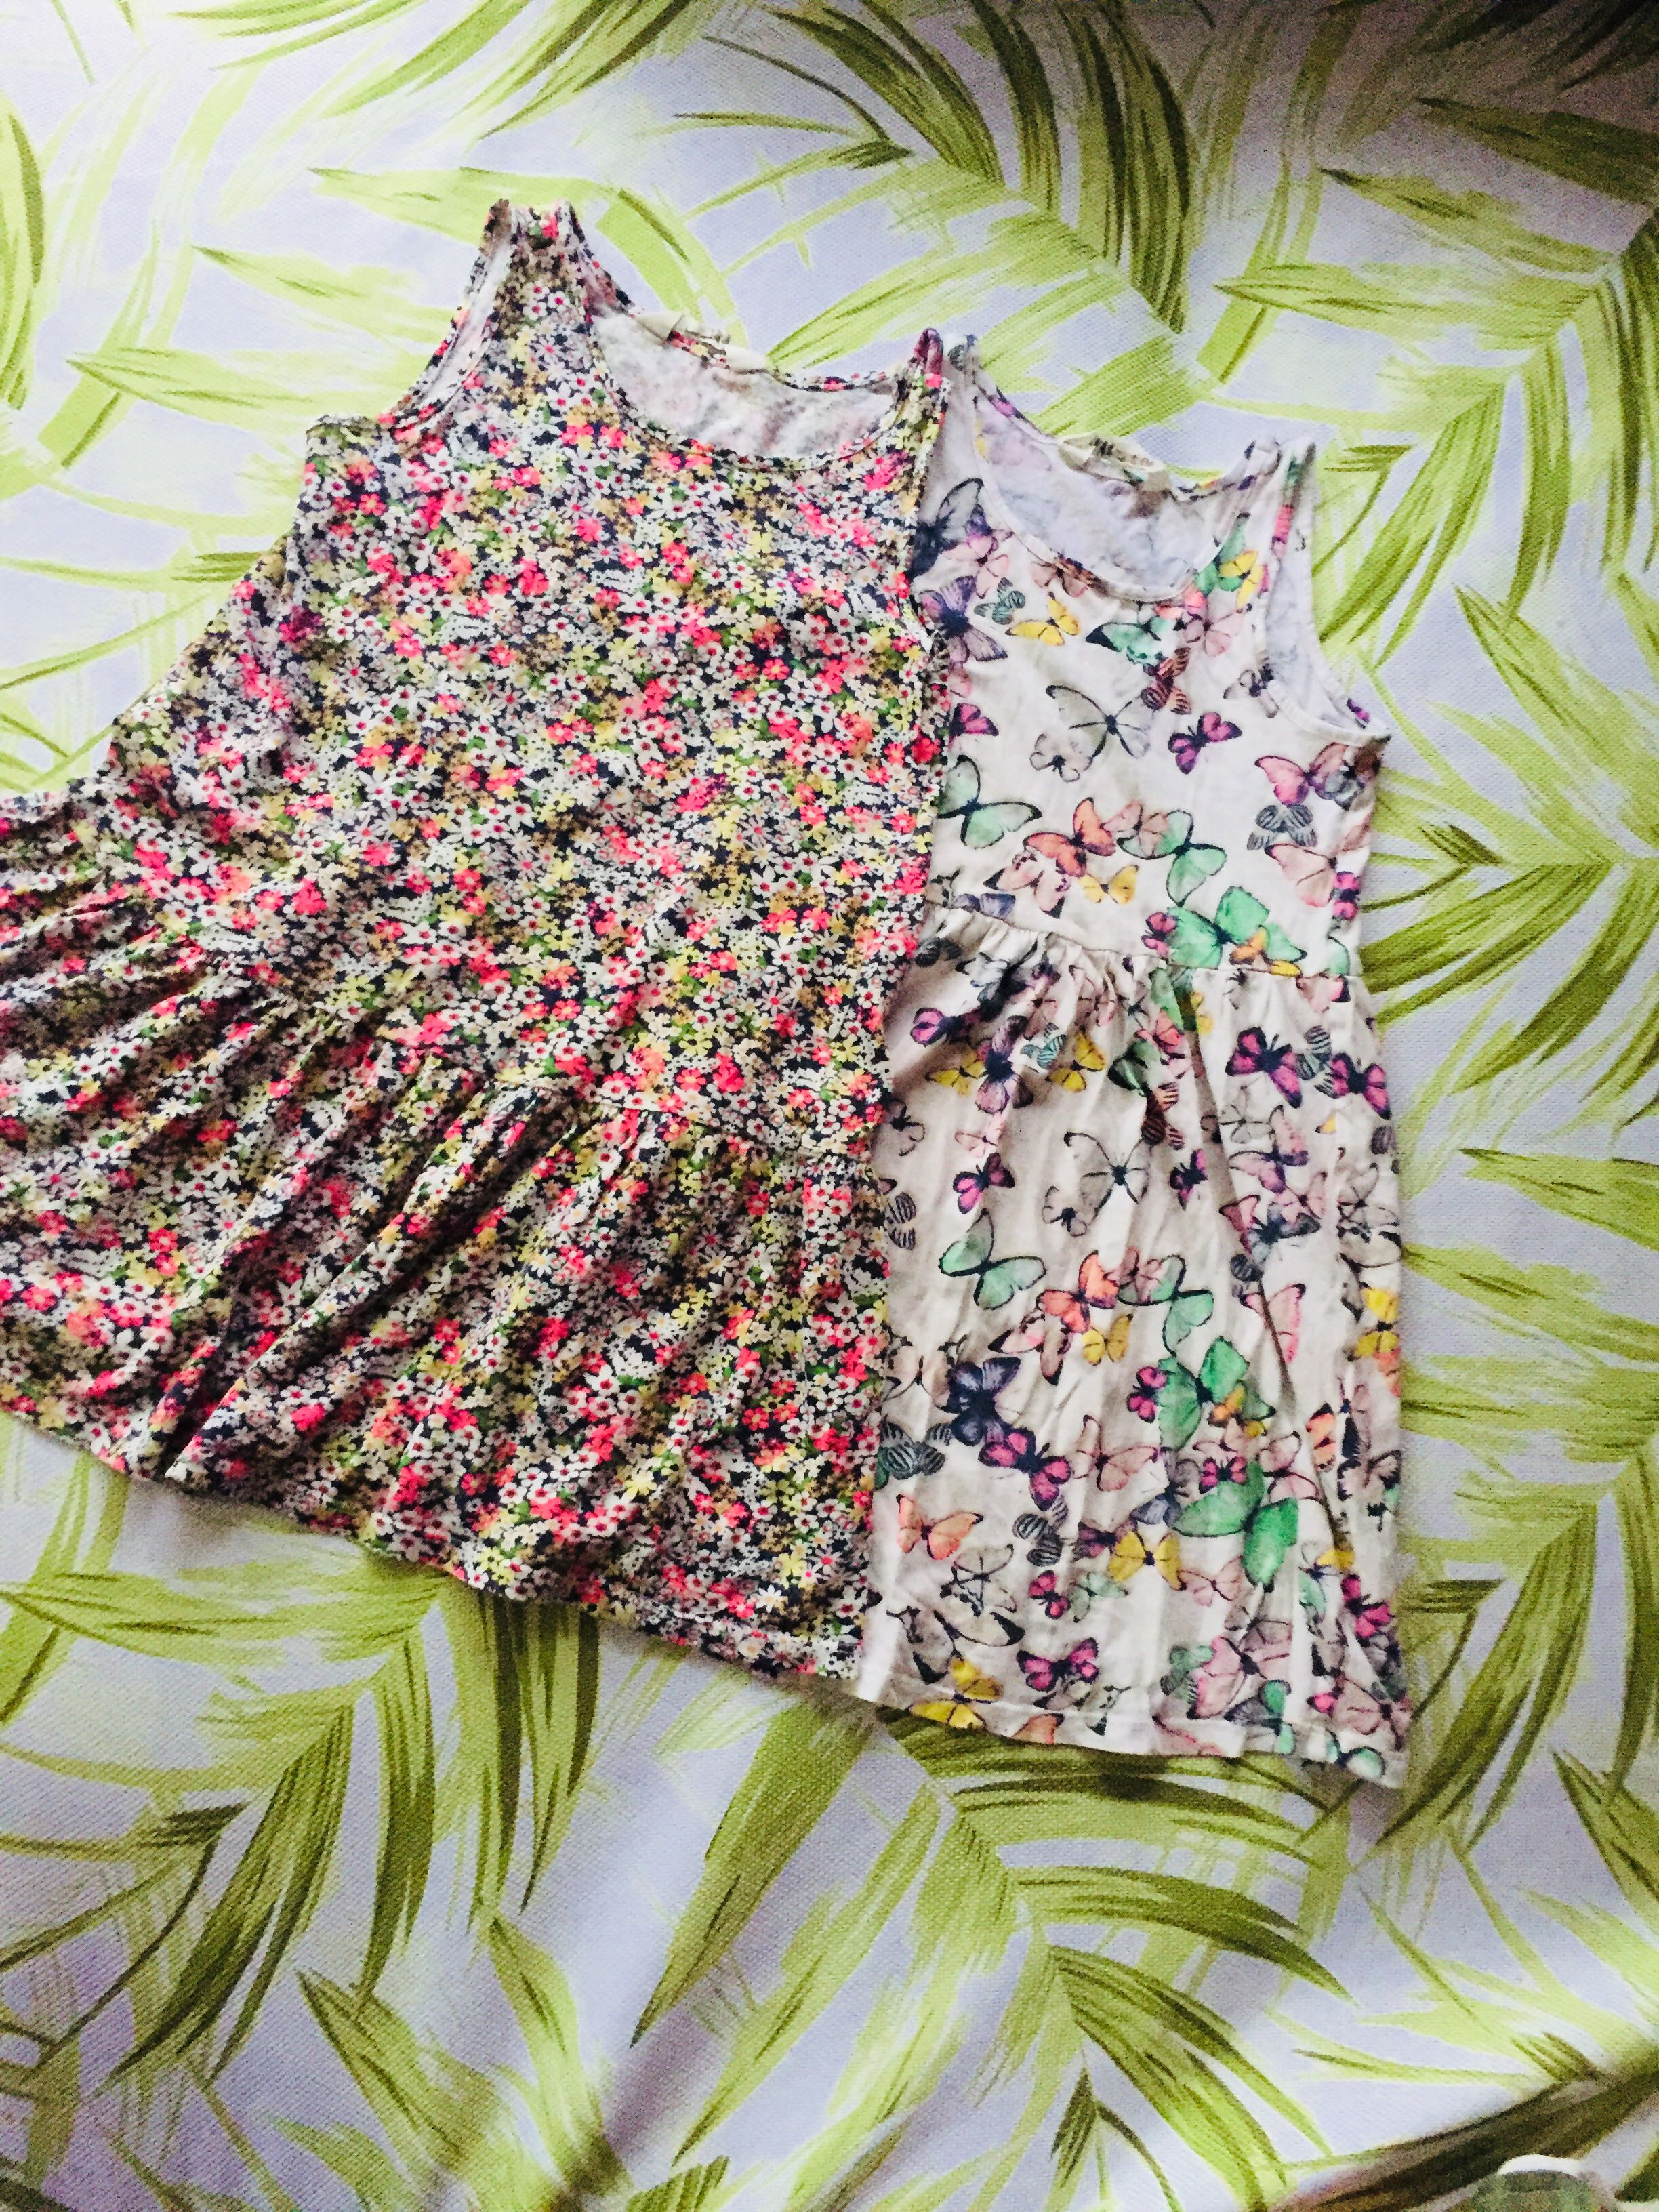 H&M dresses flowers 🌺 and butterflies 🦋